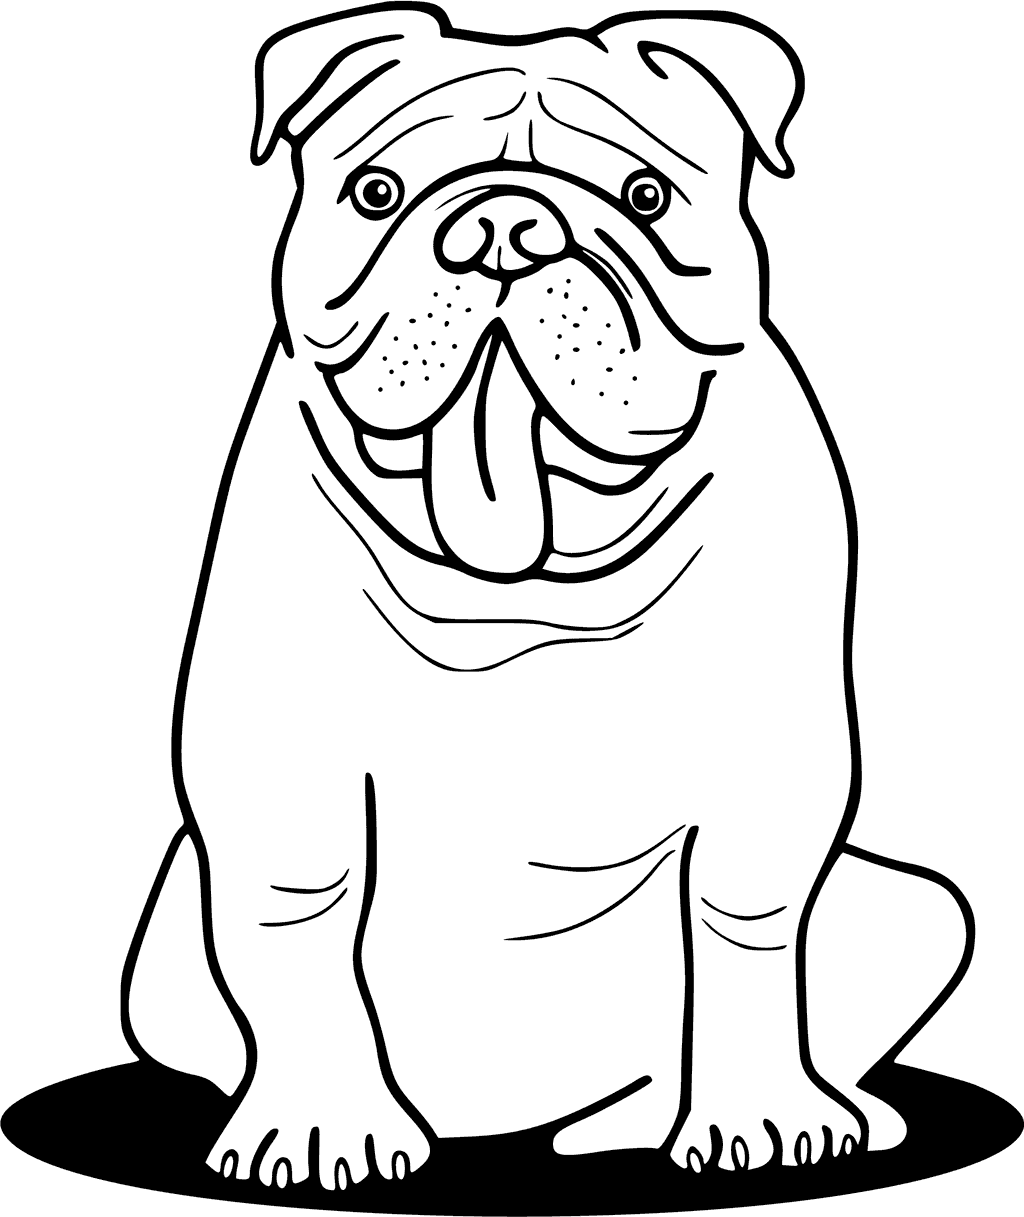 bulldogs coloring pages bulldog coloring pages printable coloring home coloring bulldogs pages